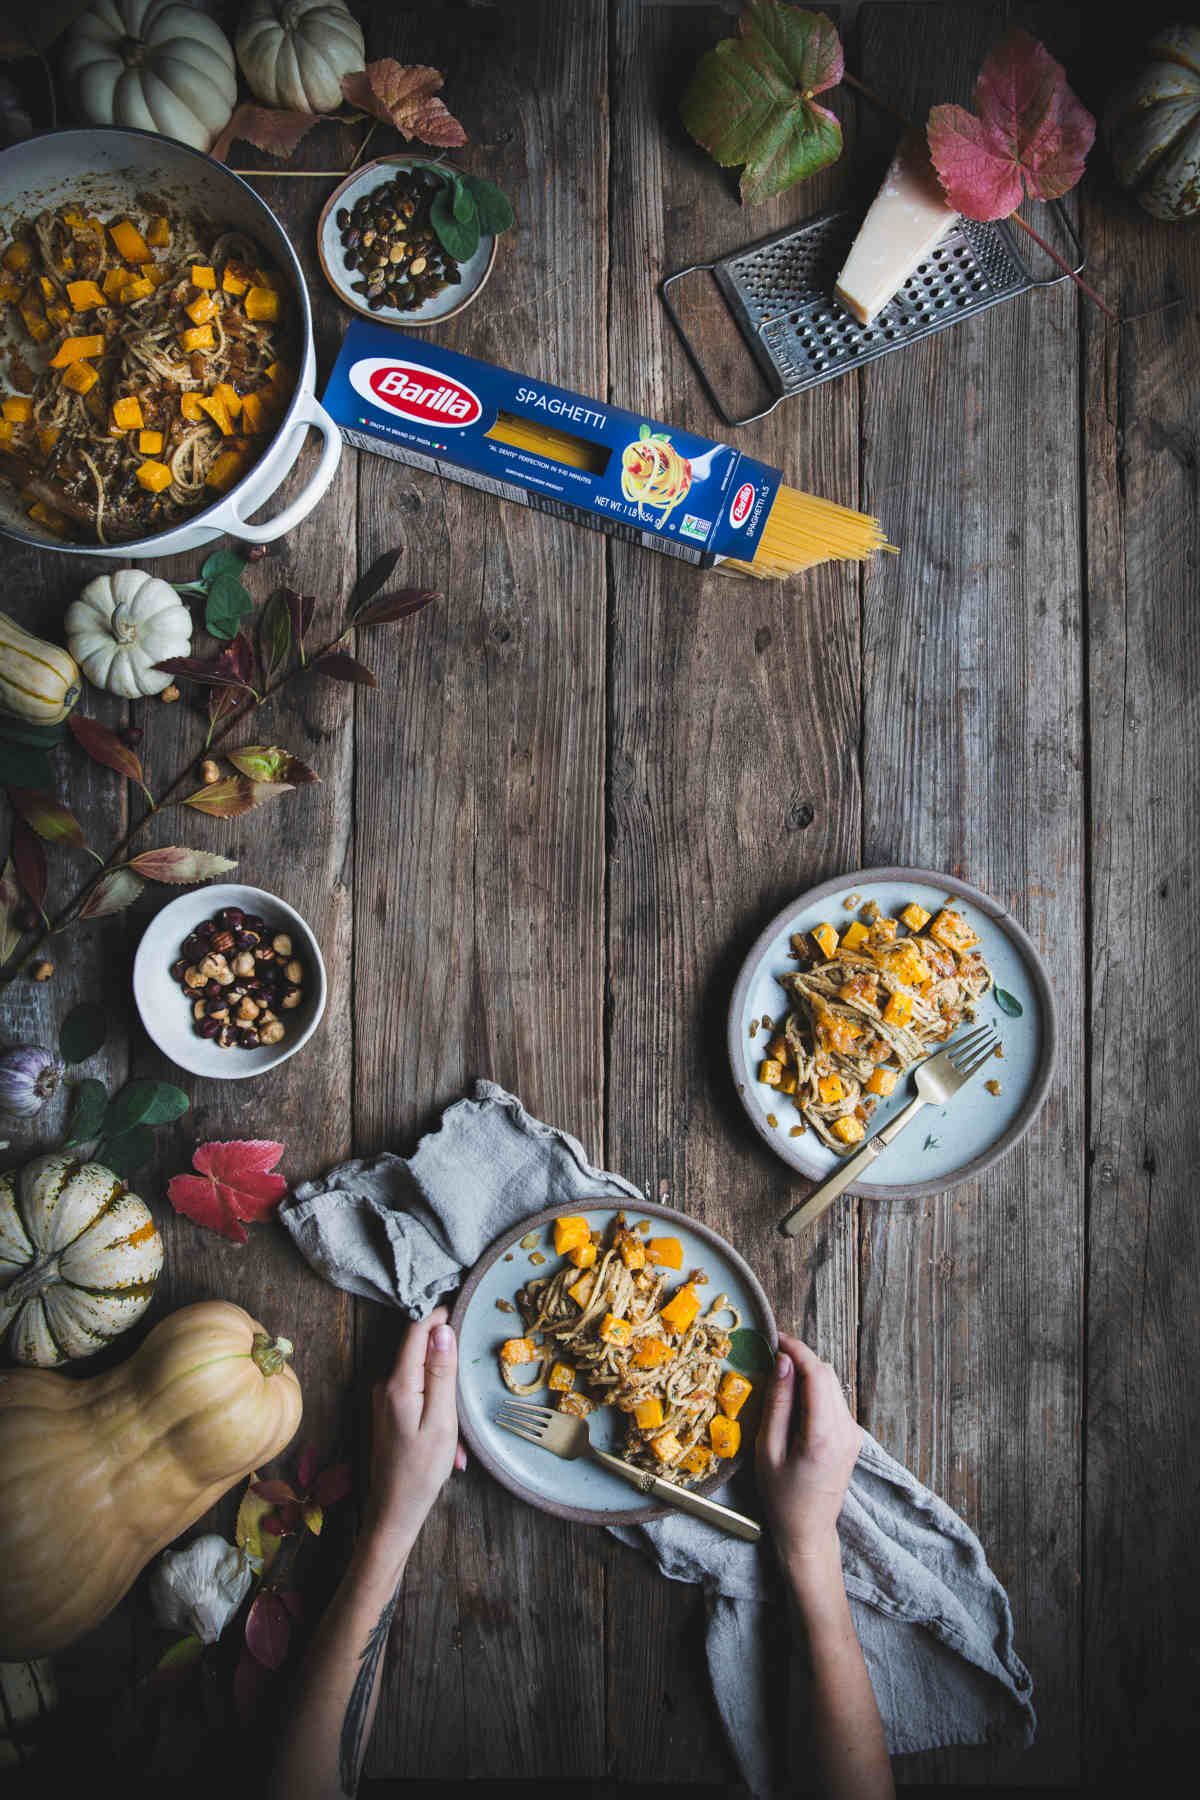 With its pasta sold in more than 100 countries, Barilla's biggest hurdle is to make sure that every product, and its packaging and labeling, meets the regulations in each local market. (Image © Eva Kosmas Flores)